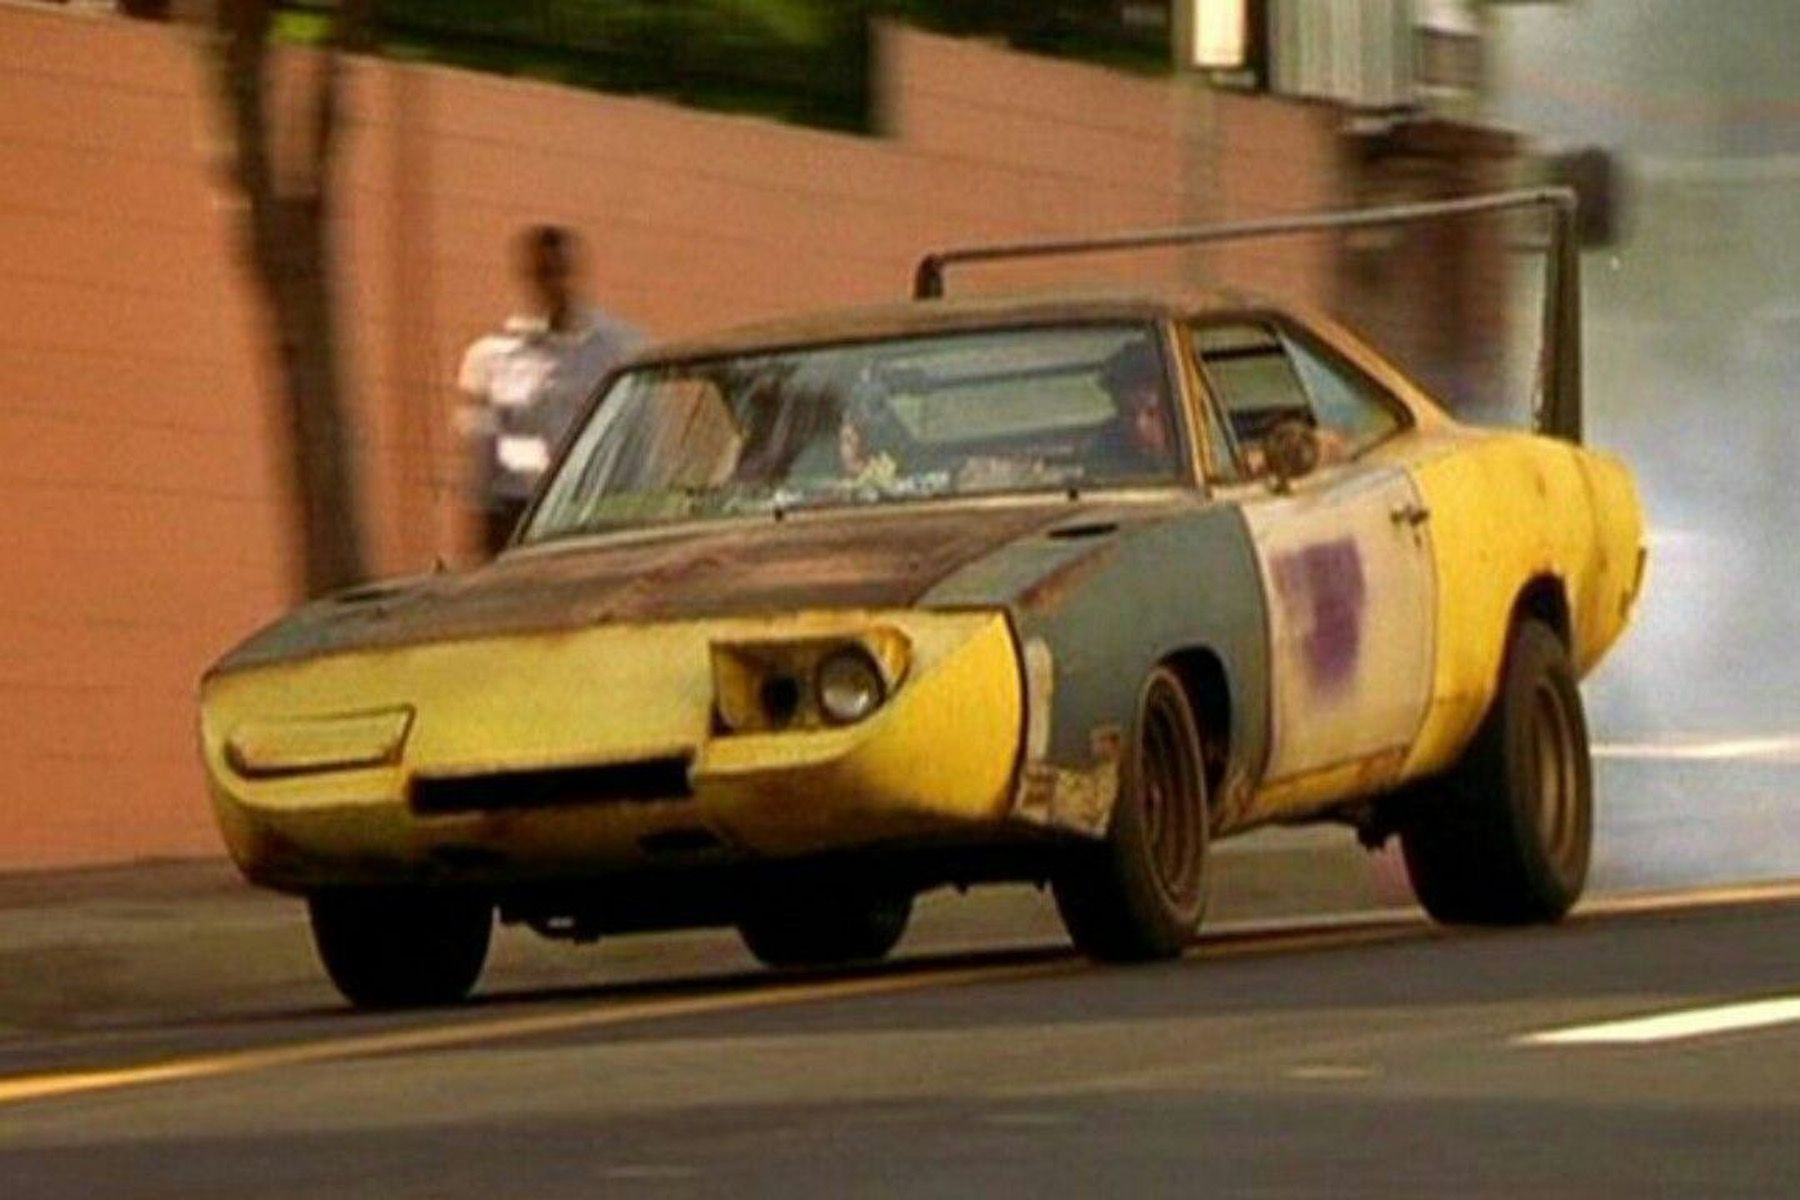 A 1969 Dodge Charger Daytona in 'Joe Dirt'